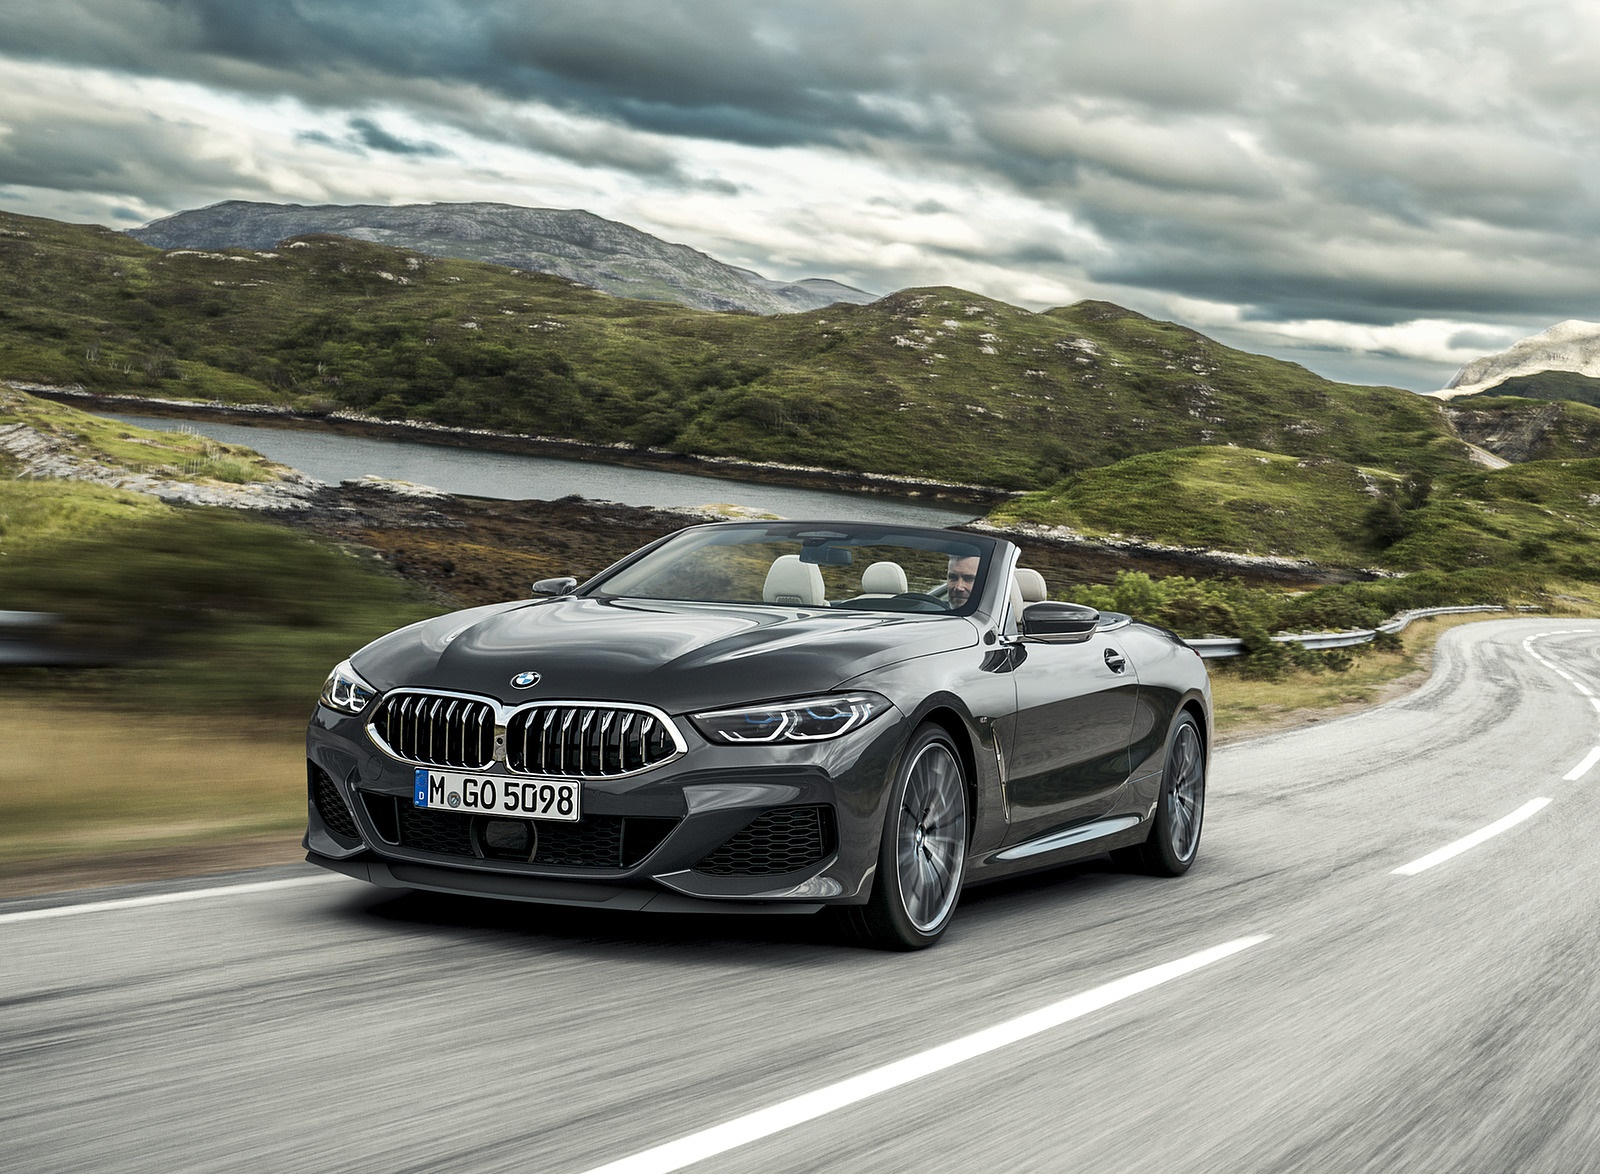 2019 BMW 8 Series M850i xDrive Convertible Front Three-Quarter Wallpapers #1 of 58